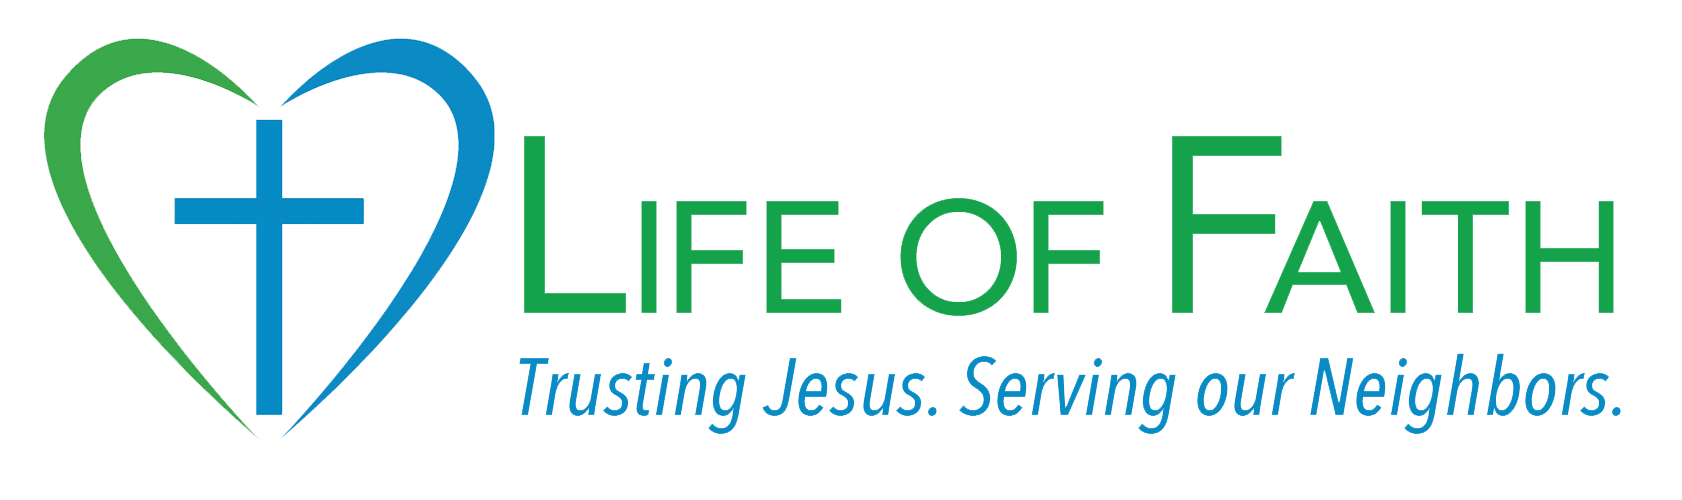 Life of Faith Initiative